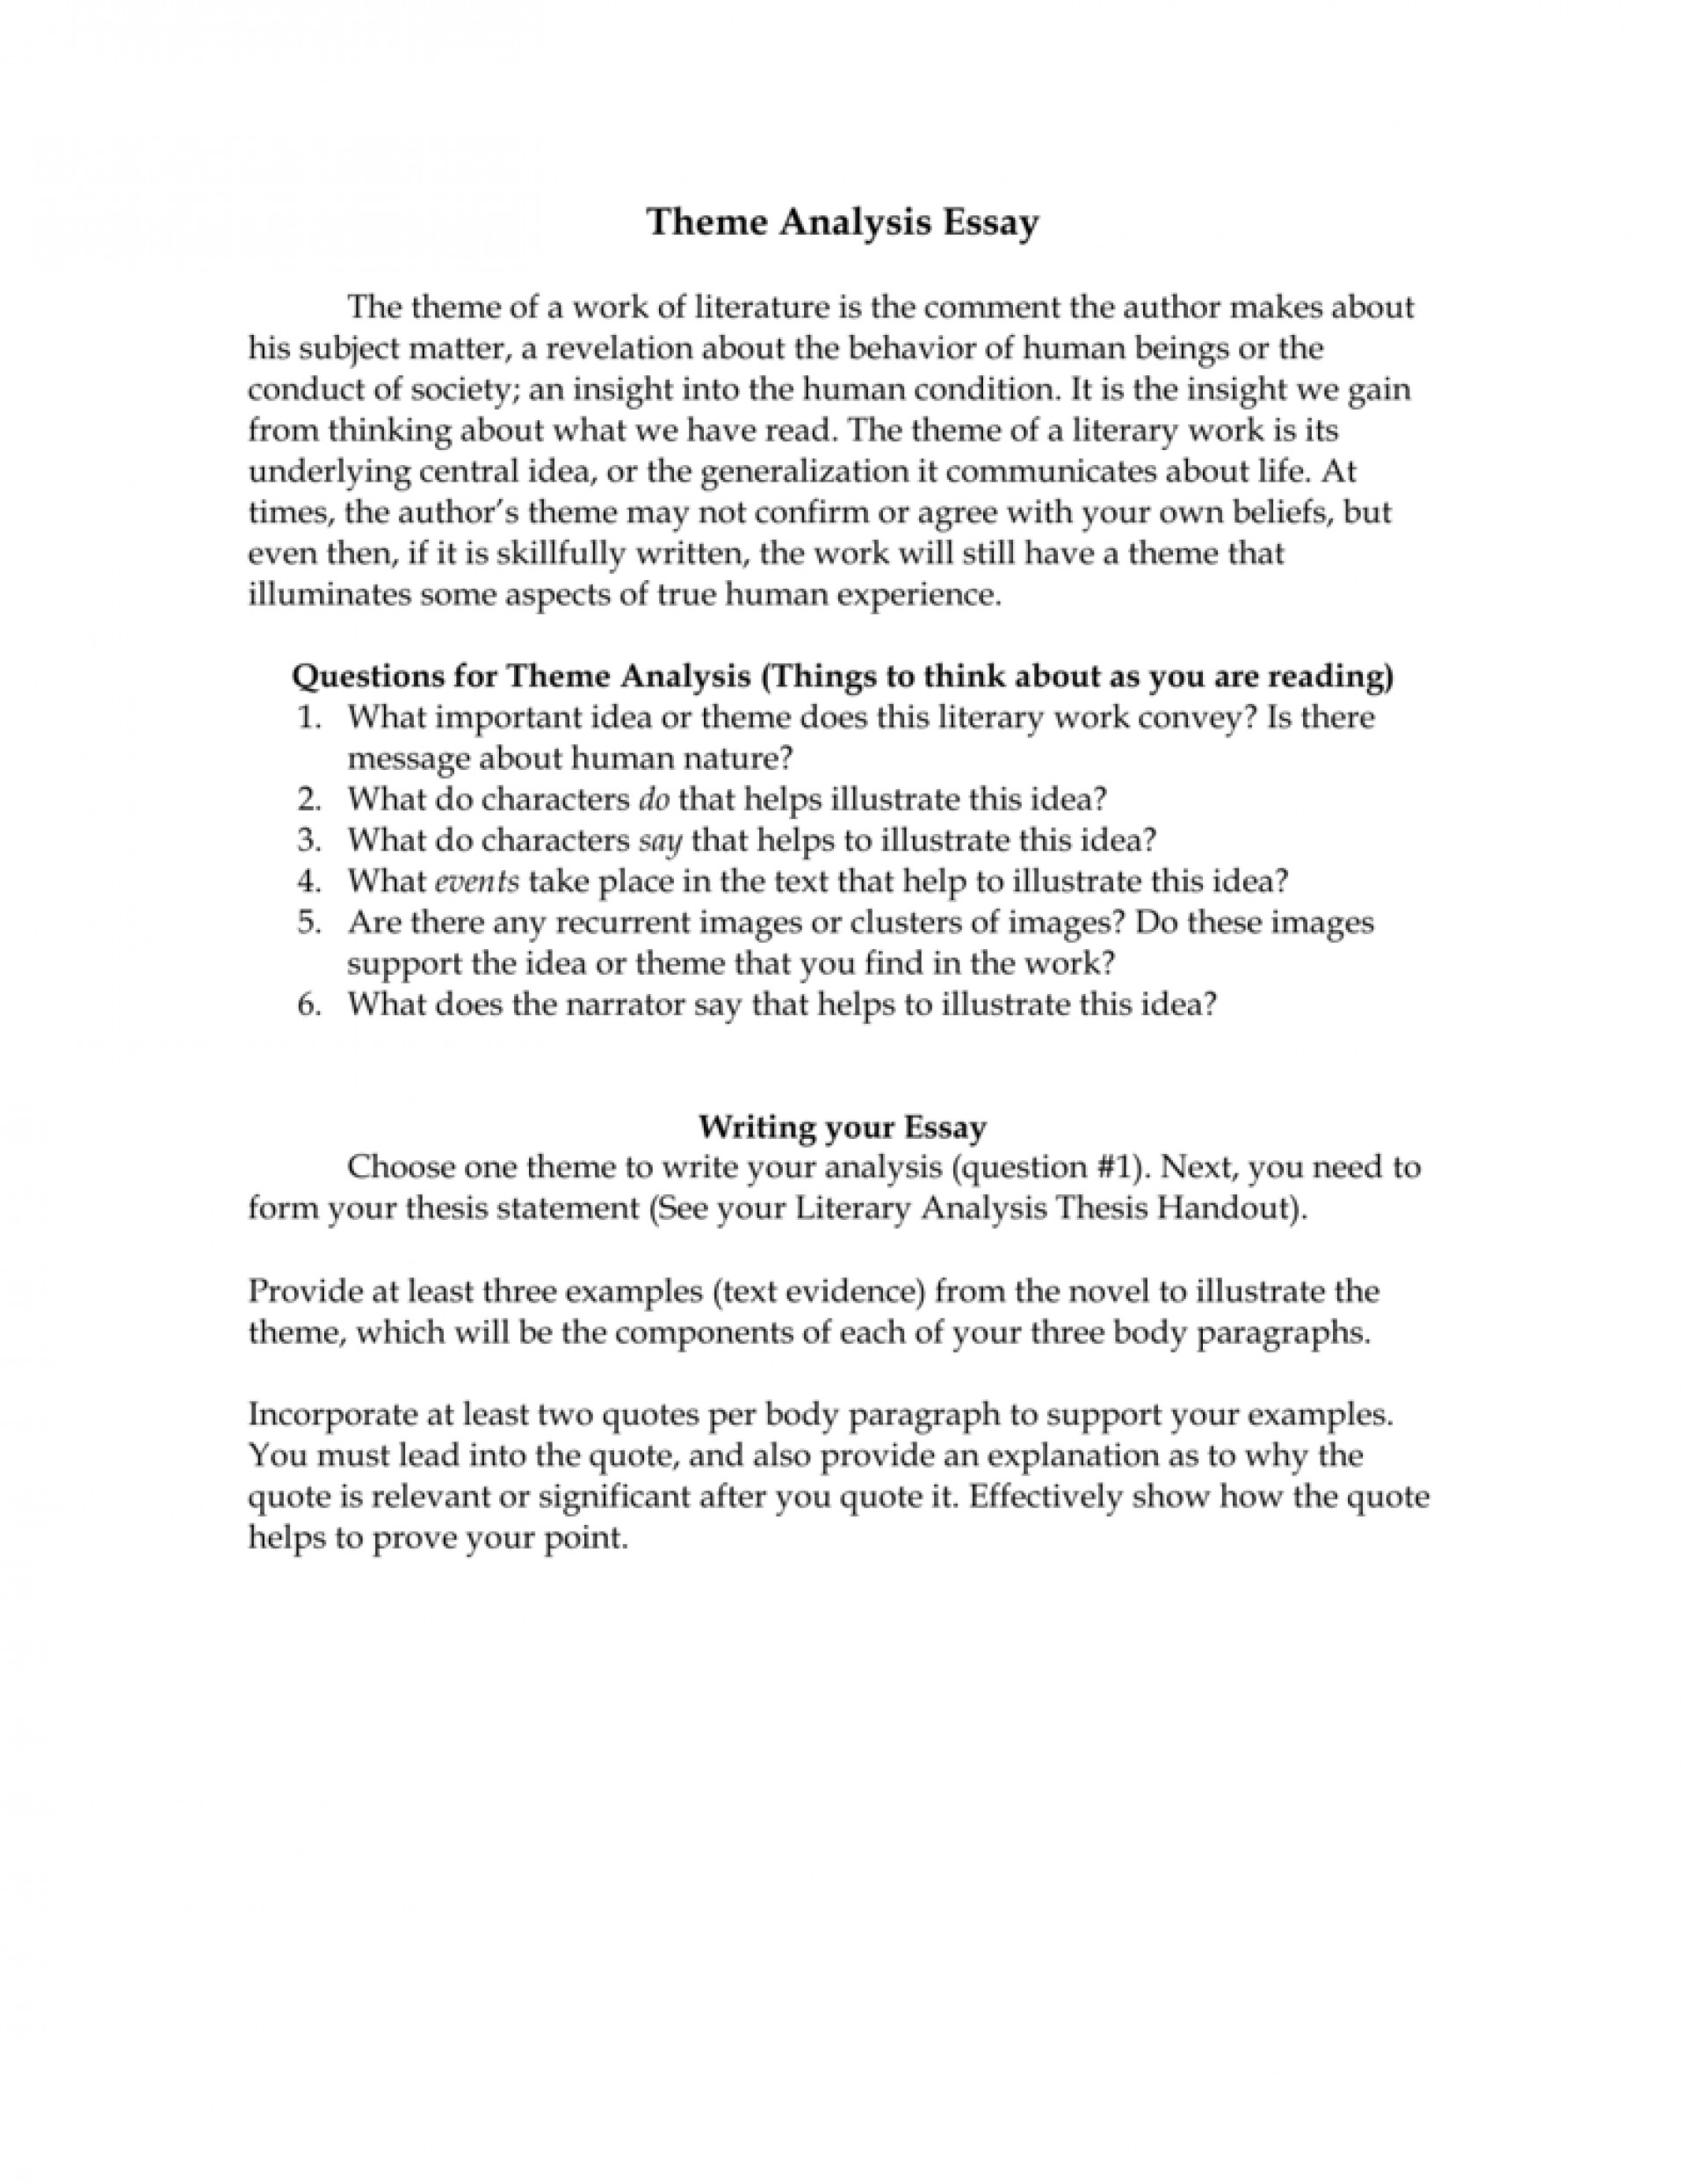 006 008025276 1 Essay Example How To Write Best A Thematic Us History Regents Introduction For Global 1920